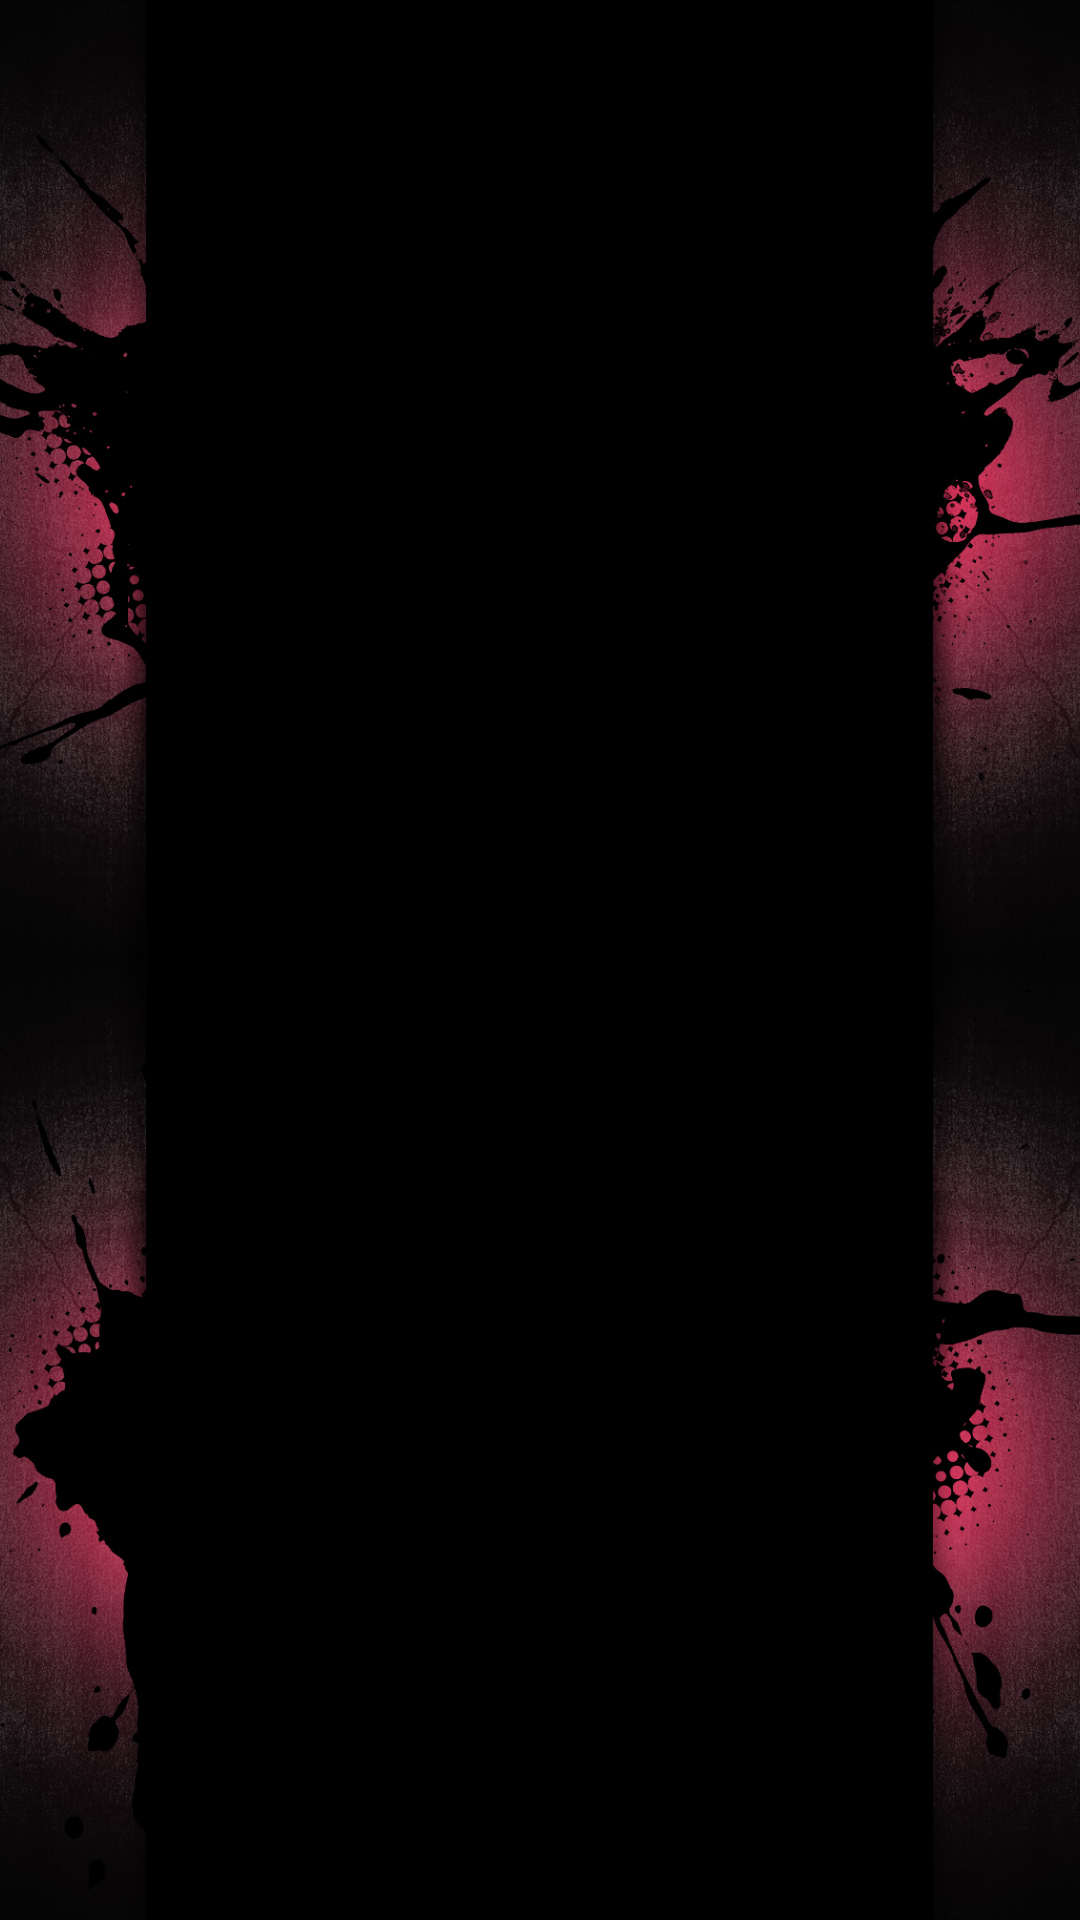 Free download Rap Background Music The background image [1600x2012